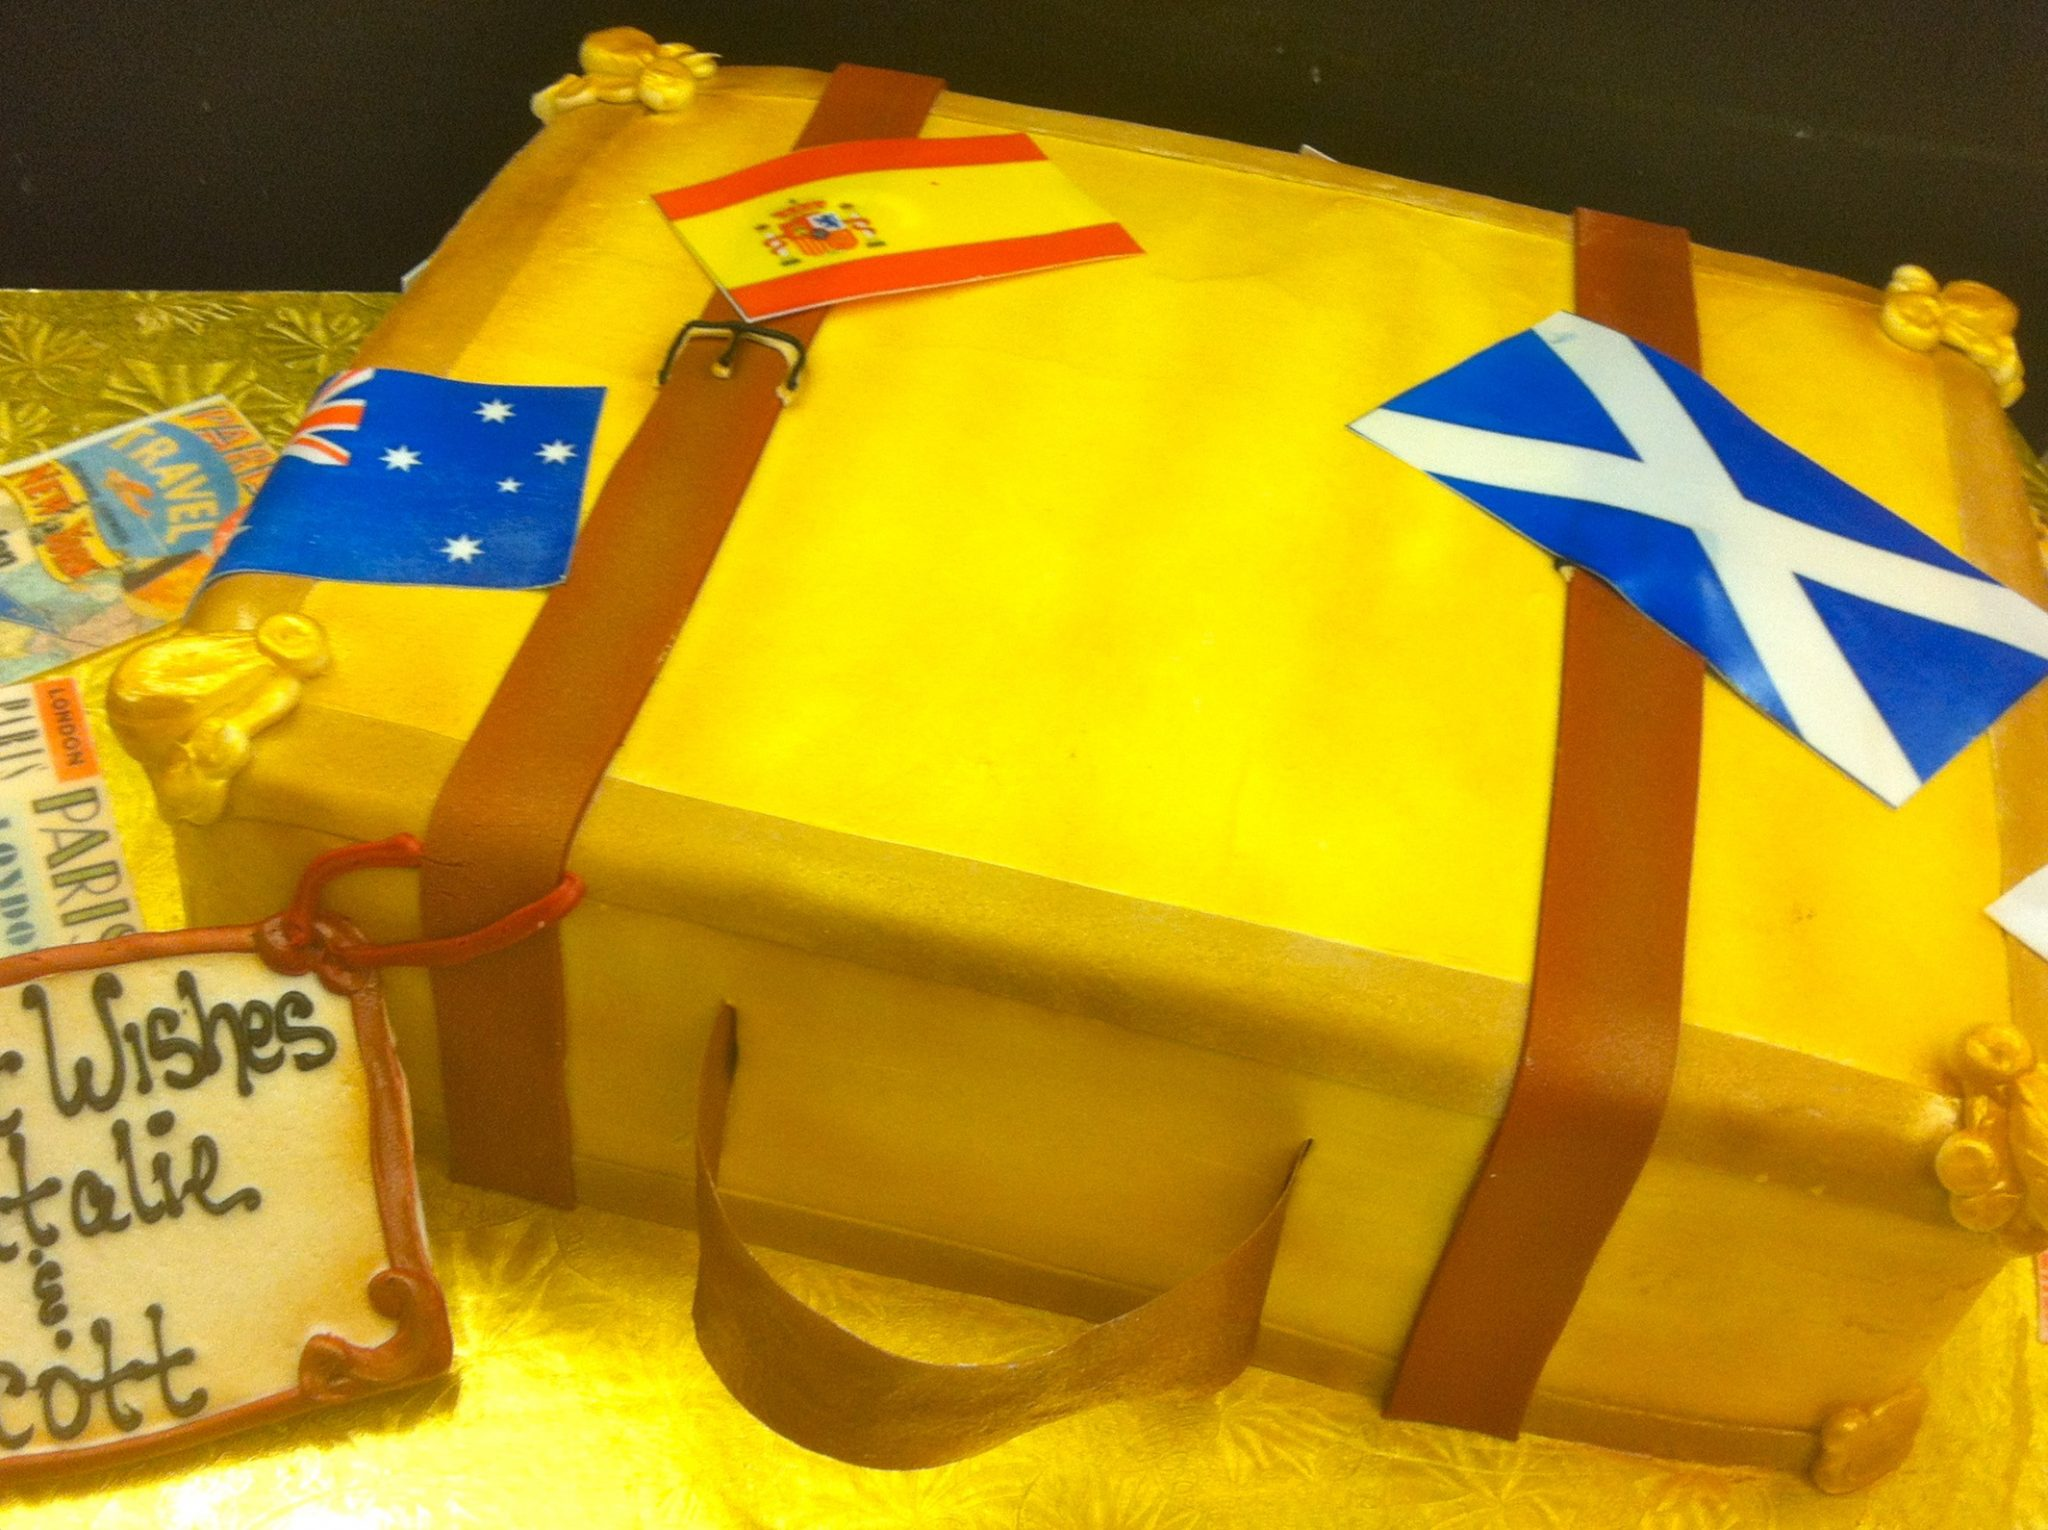 Suitcase/Travel Bag, Cake, travel, theme, birthday, grooms, world, jacksonville, beach, bakery